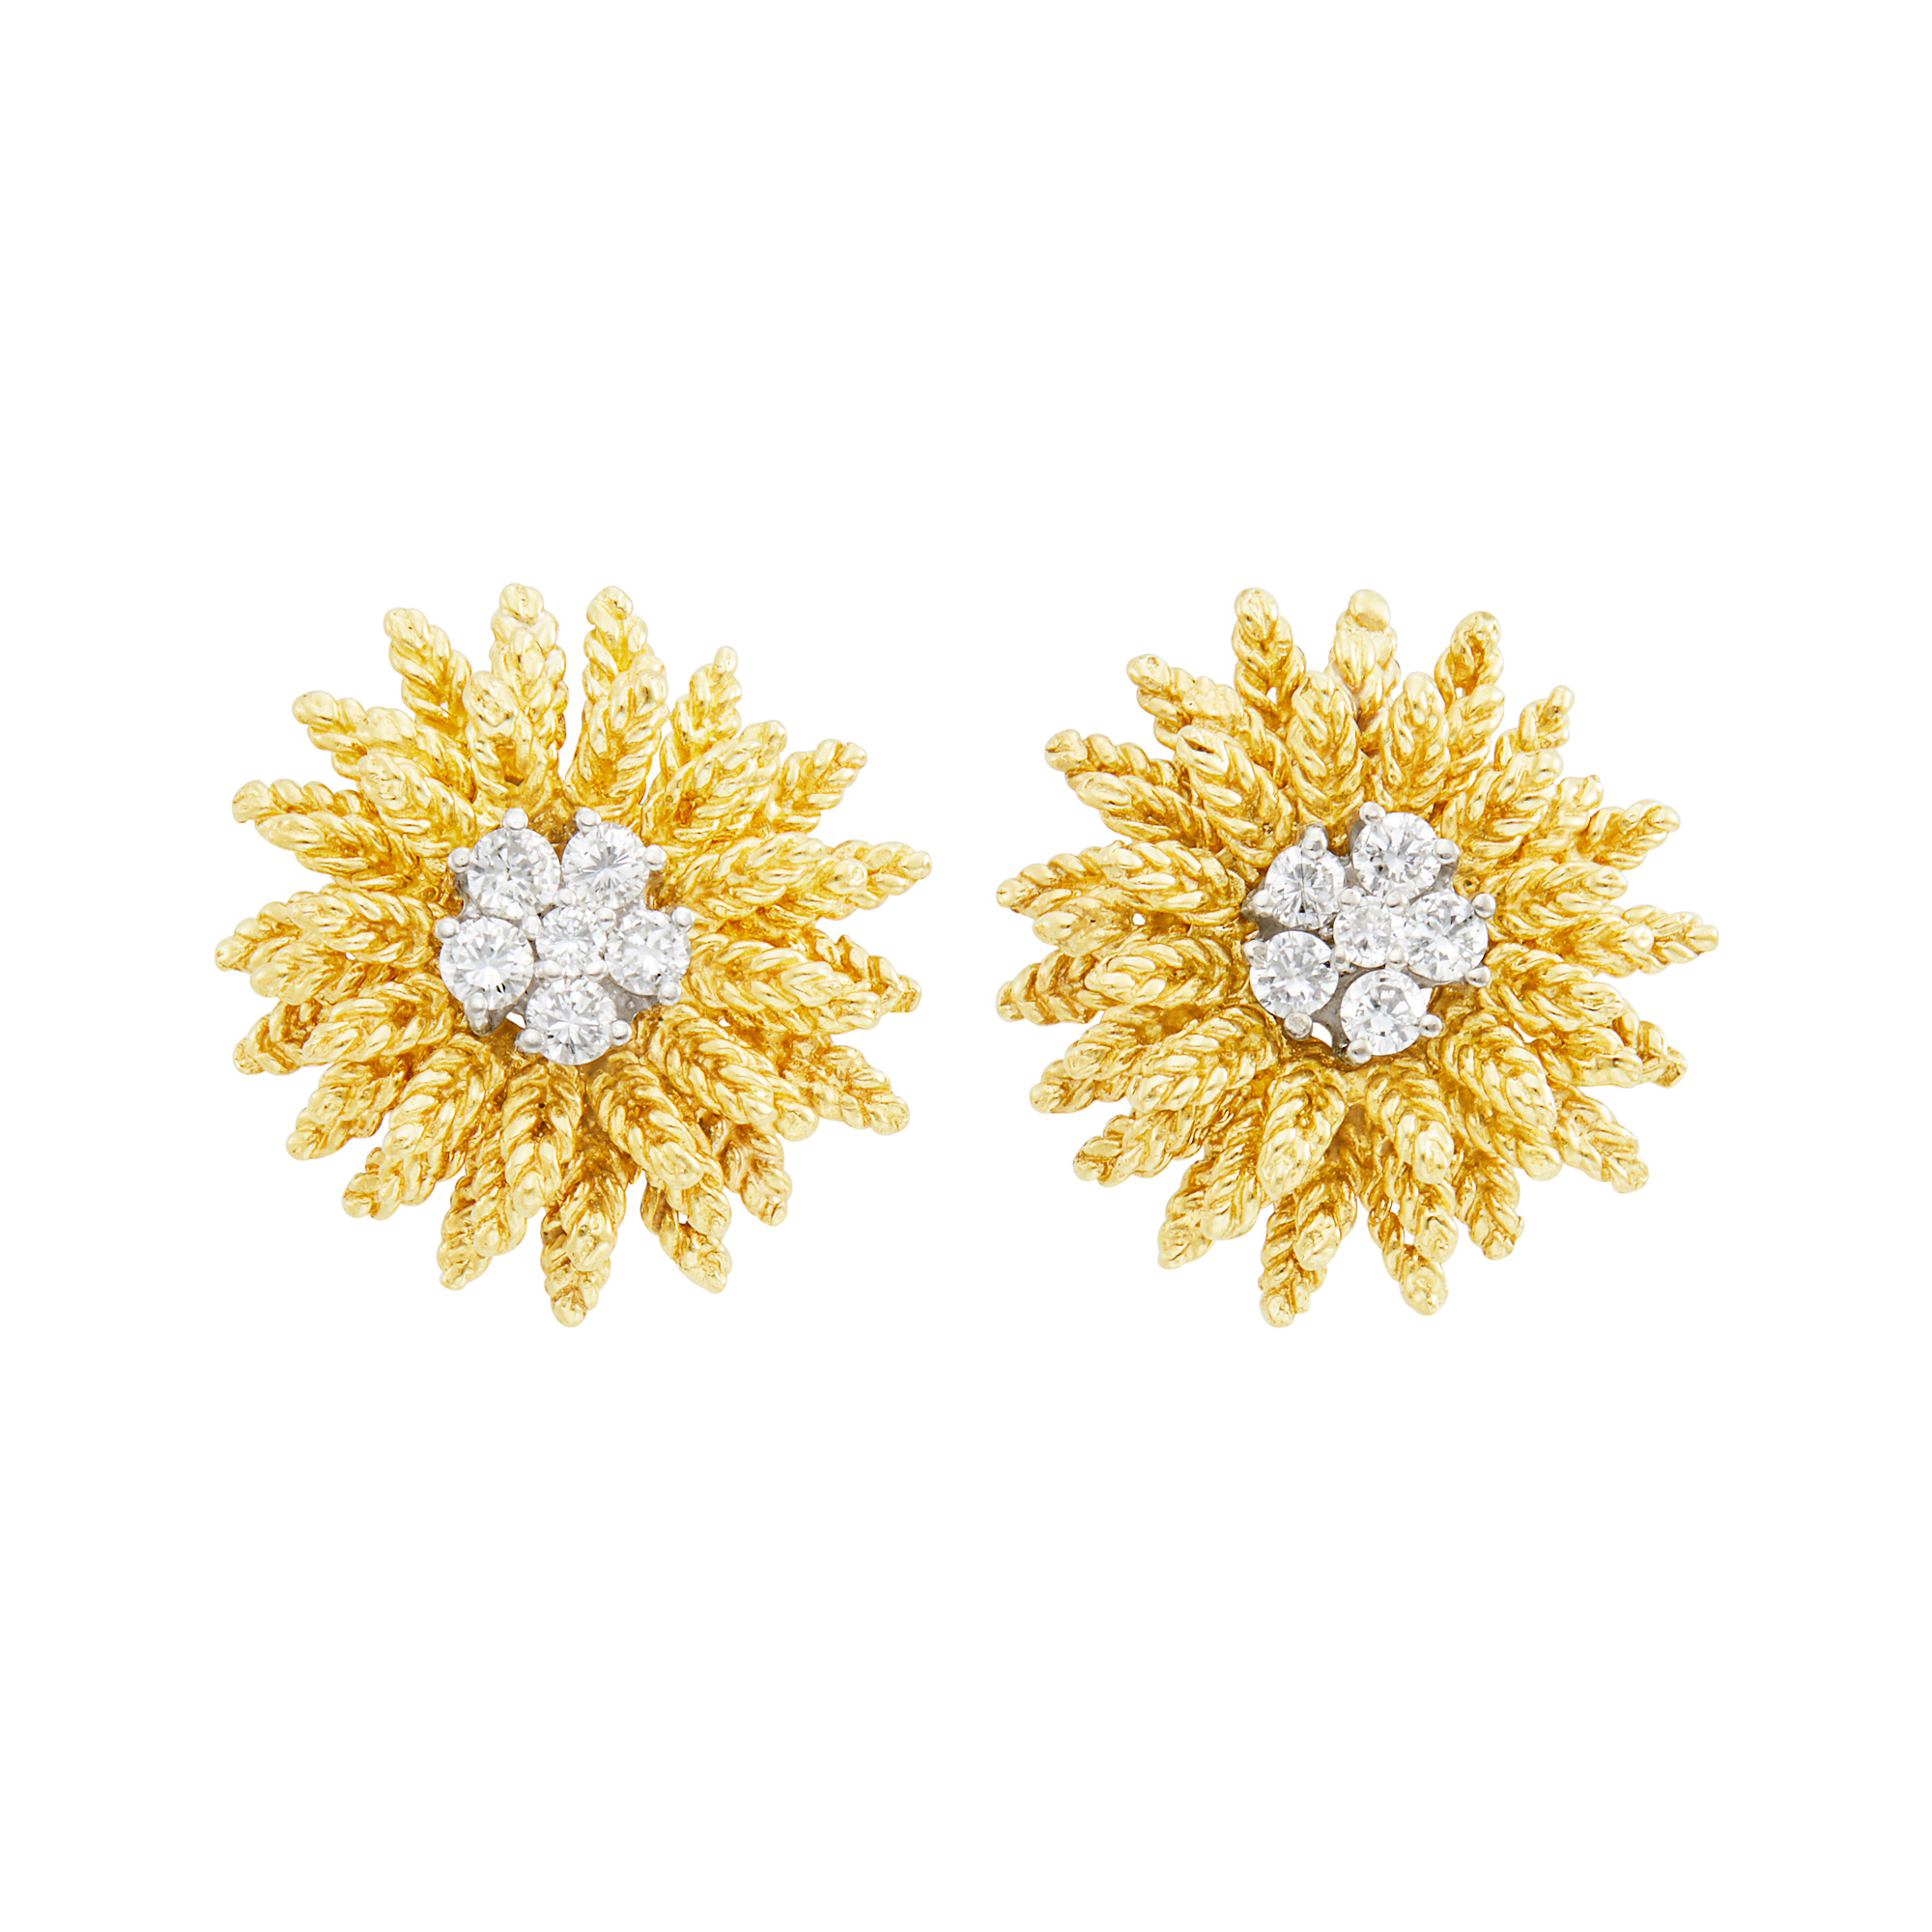 Lot image - Tiffany & Co. Pair of Gold and Diamond Flower Earrings